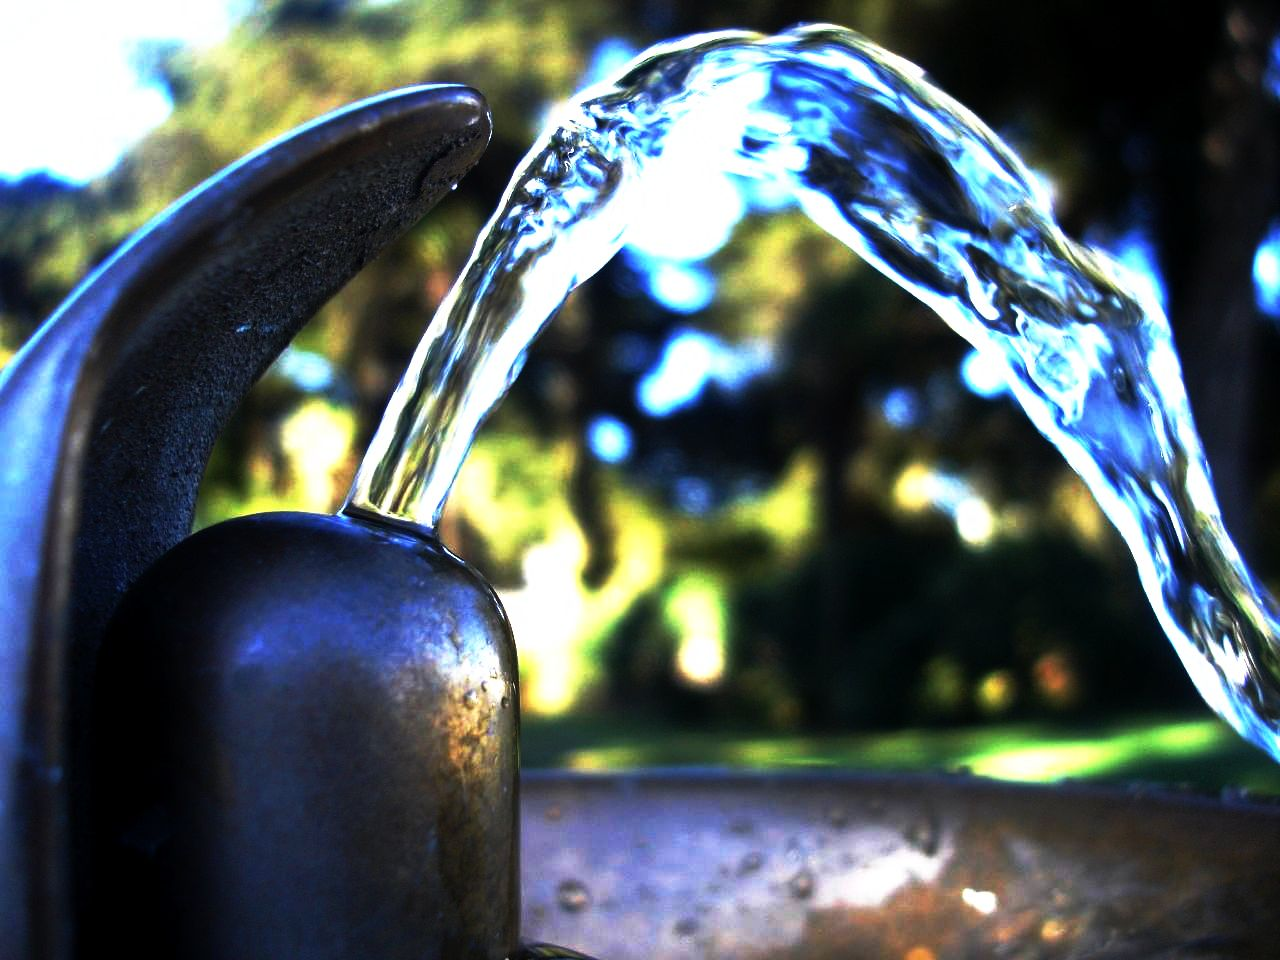 Drinking fountain - File Drinking Fountain Jpg